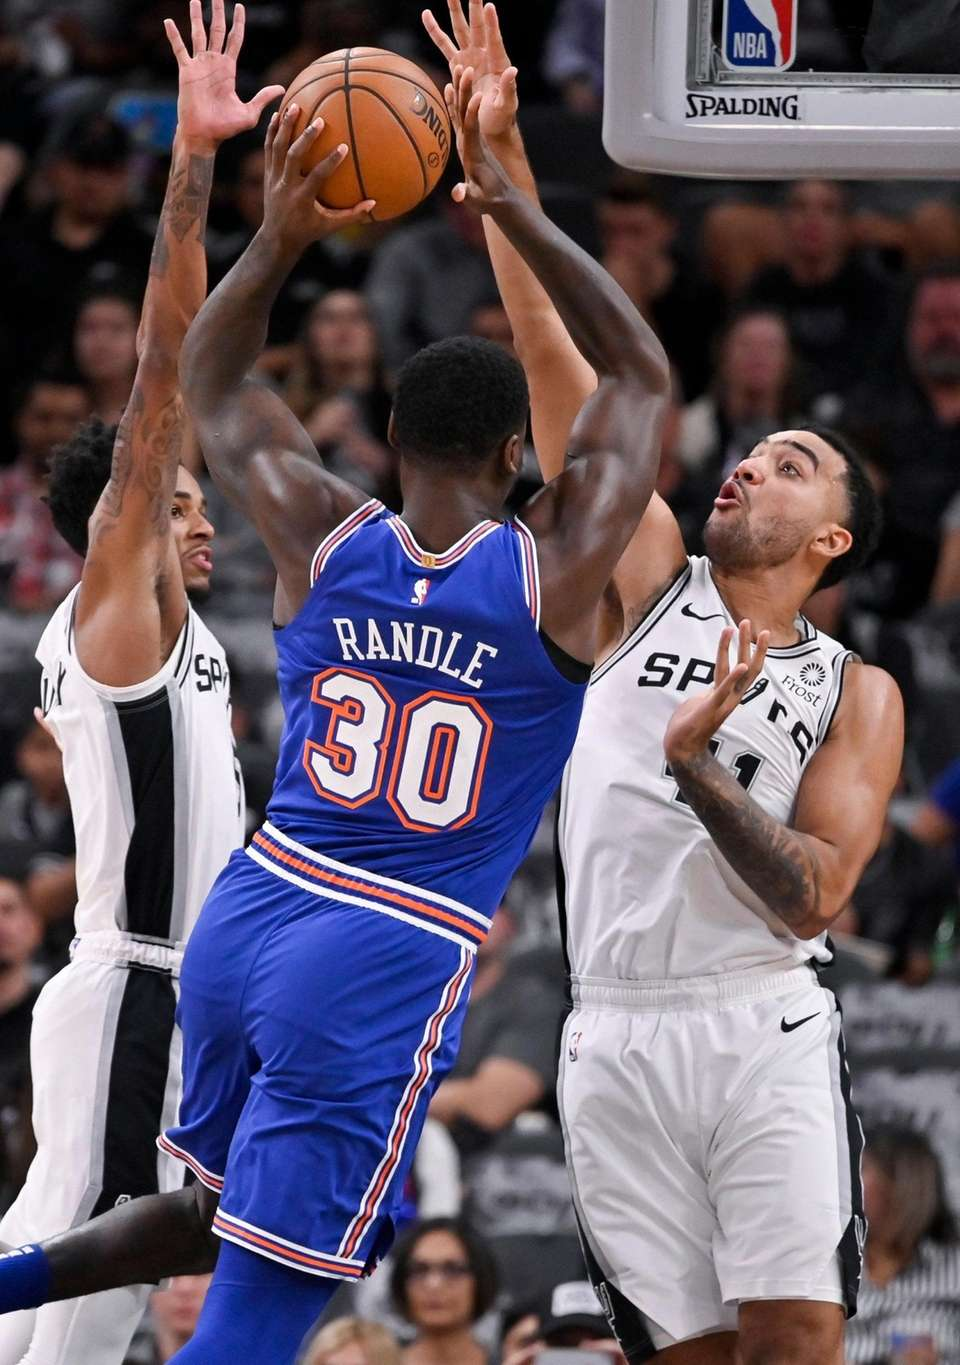 The Knicks' Julius Randle attempts to shoot against